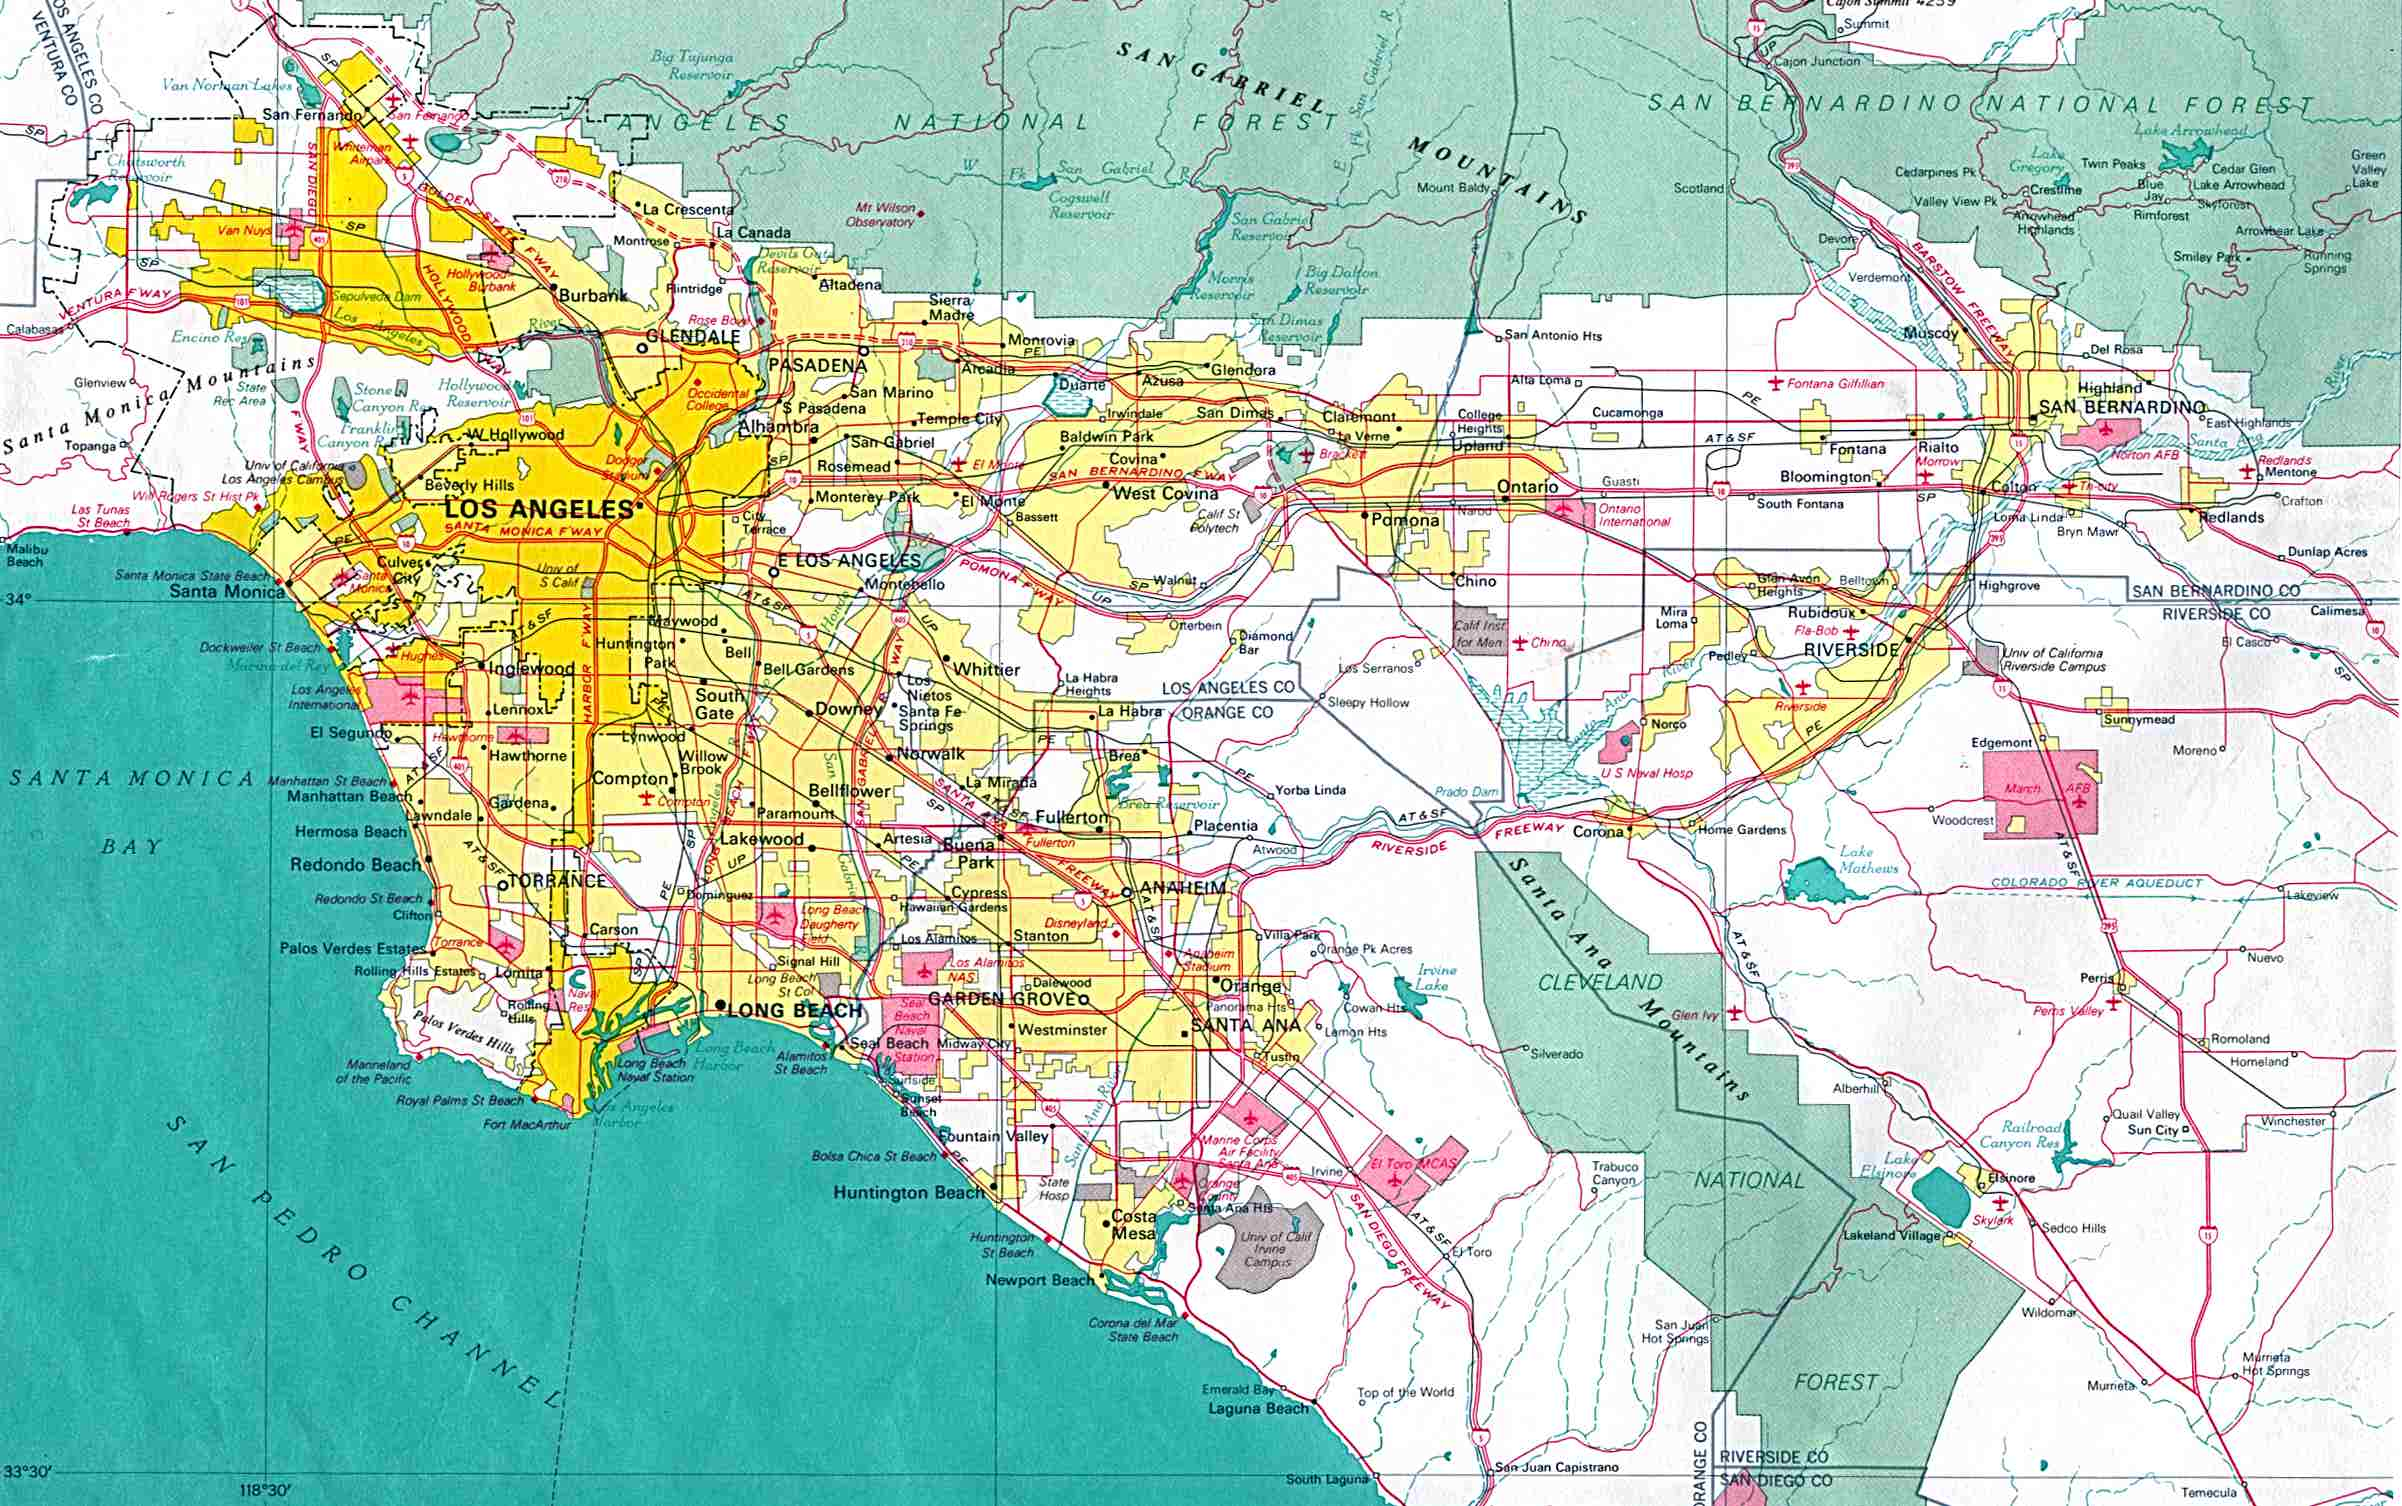 Los Angeles City Map, California, United States